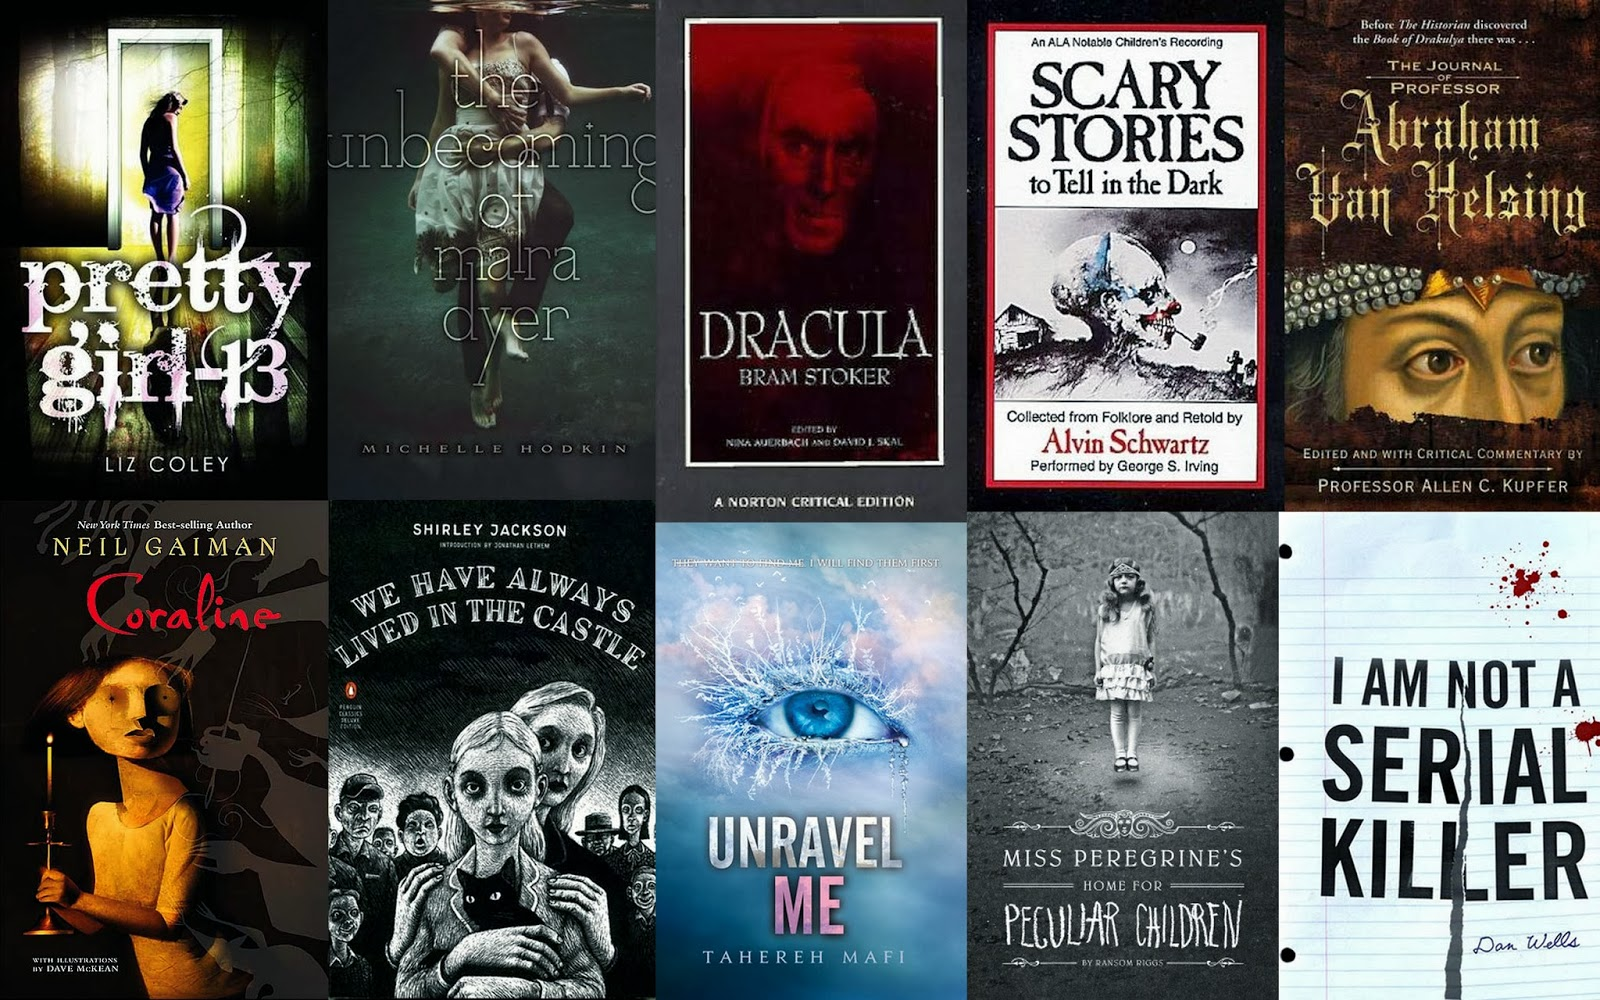 Book Cover Design Horror : Top scary books and book covers housewife eclectic